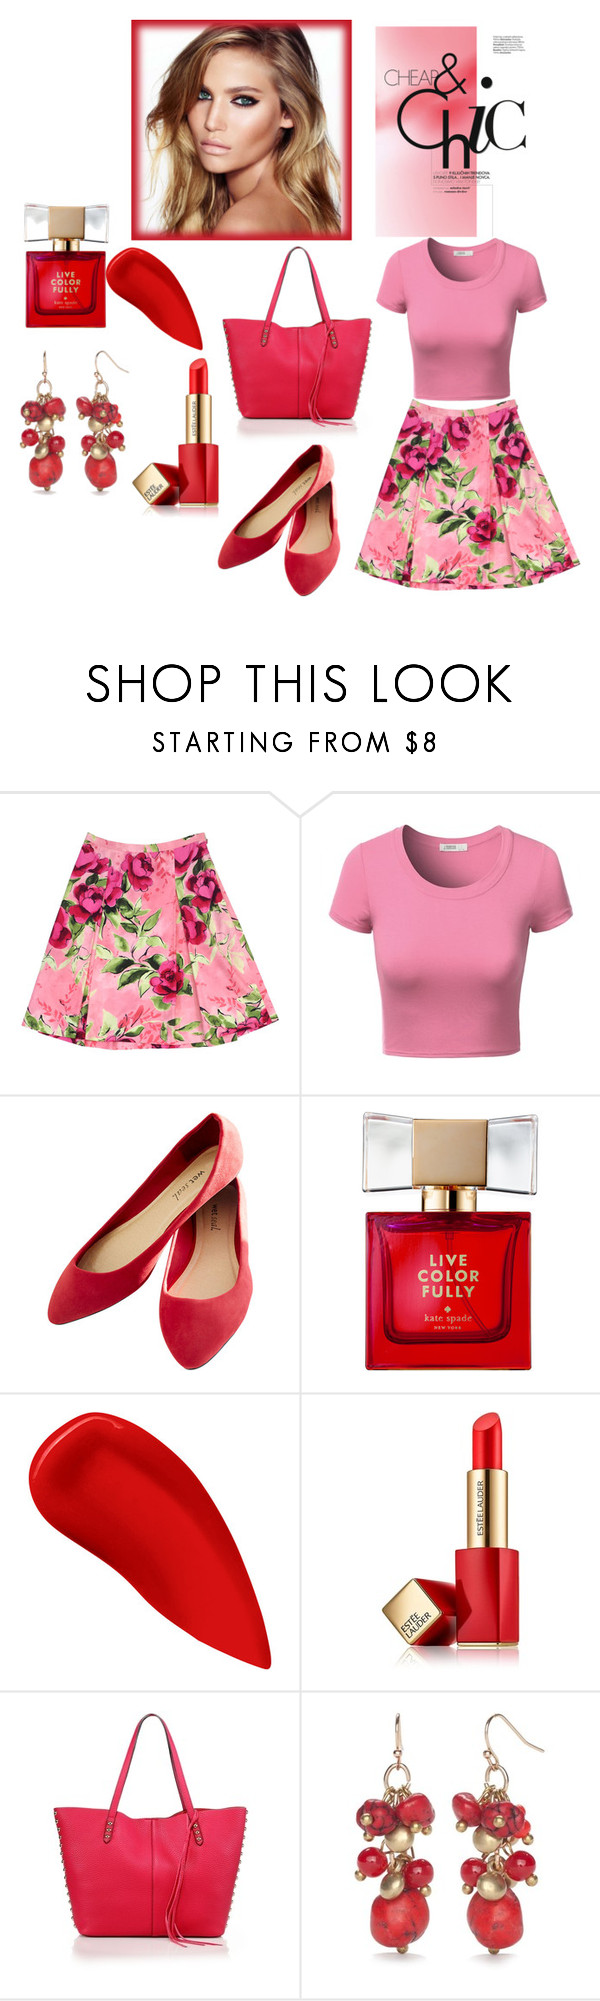 """MODA"" by suadapolyvore ❤ liked on Polyvore featuring Love Moschino, J.TOMSON, Wet Seal, Charlotte Tilbury, Kate Spade, Lipstick Queen, Estée Lauder, Rebecca Minkoff and New Directions"